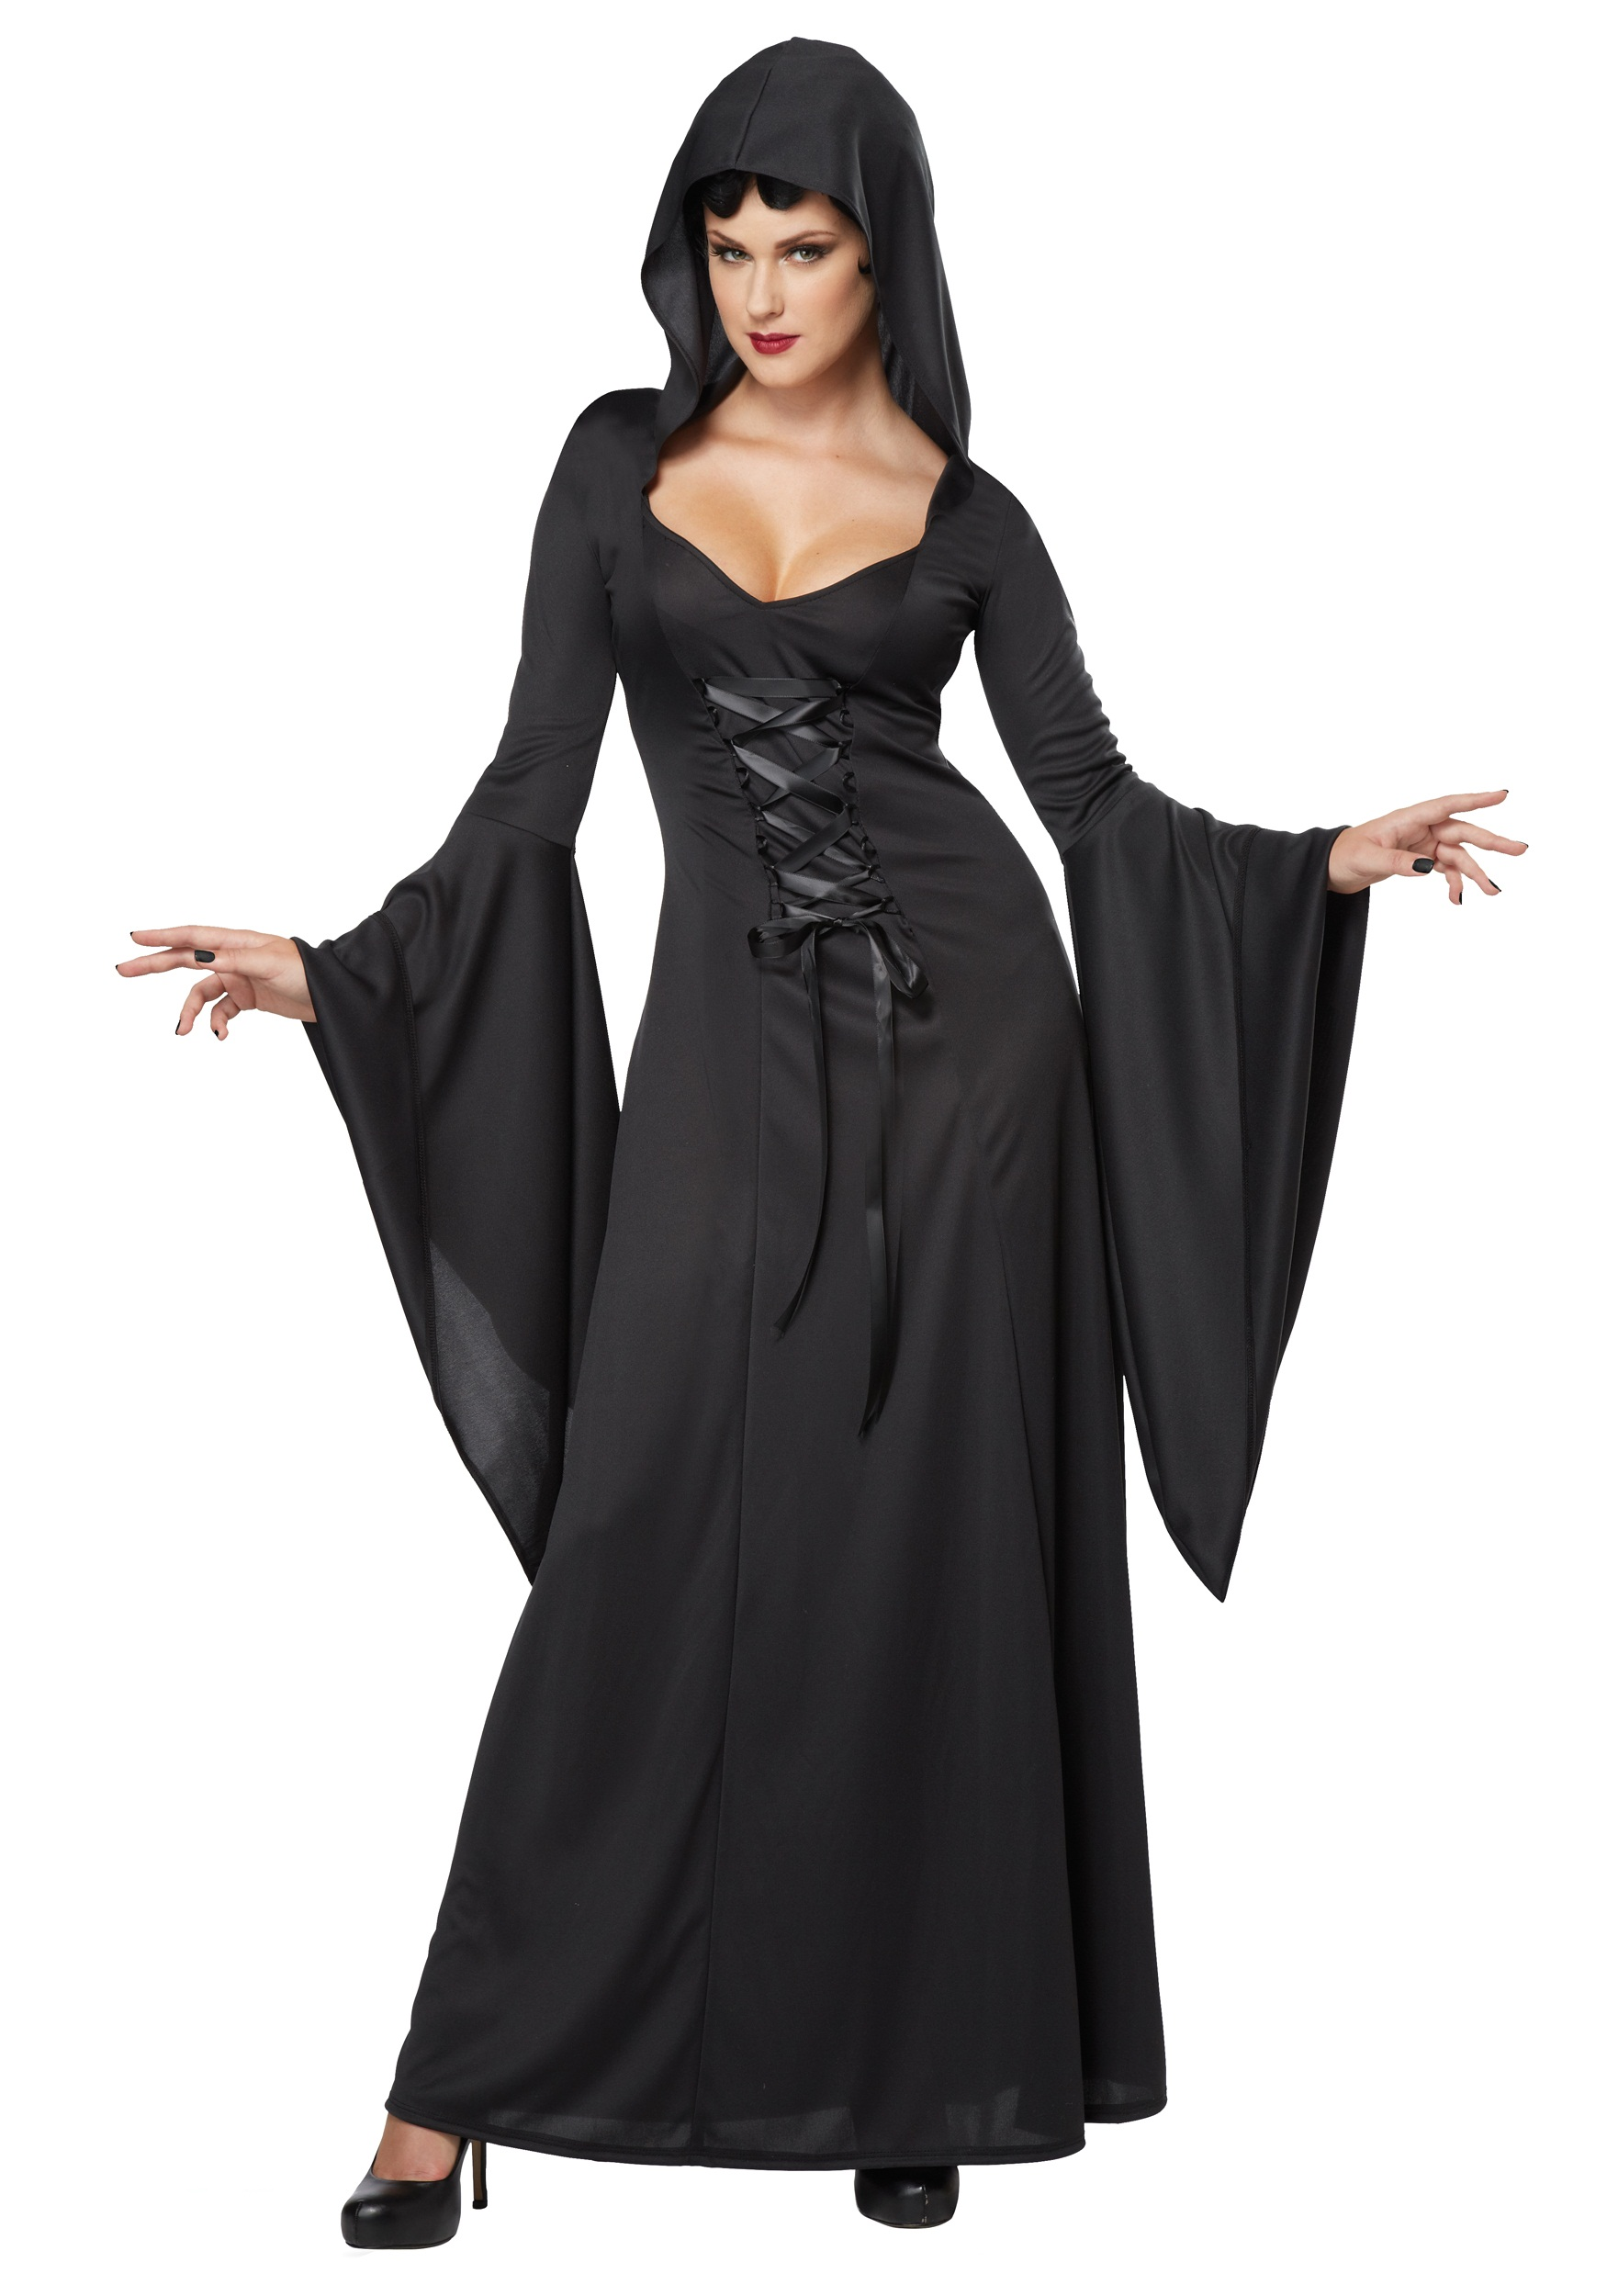 Women's Hooded Black Lace Up Robe Costume